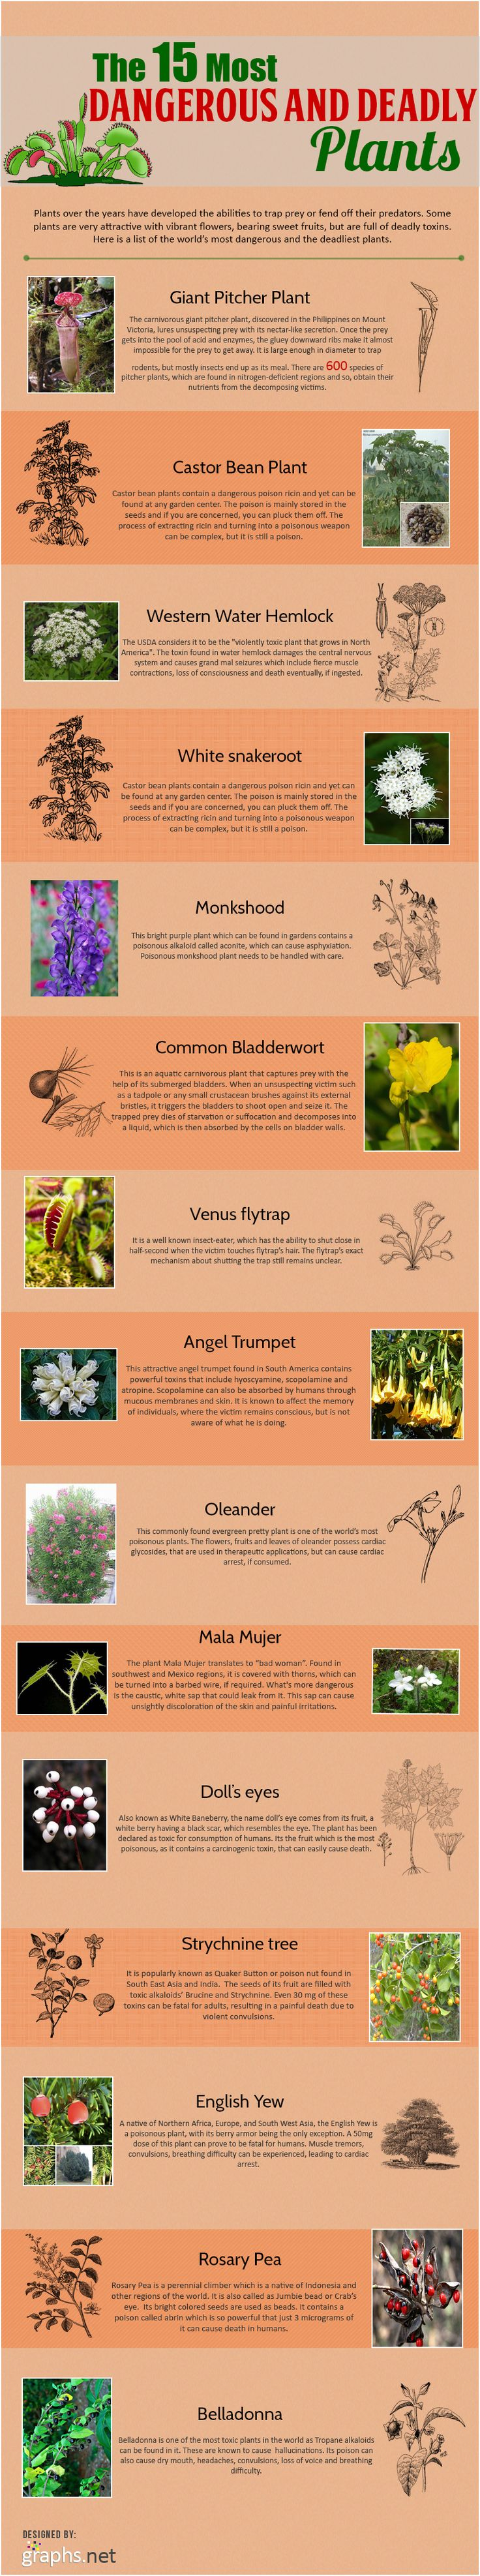 The 15 Most Dangerous and Deadly Plants Infographic